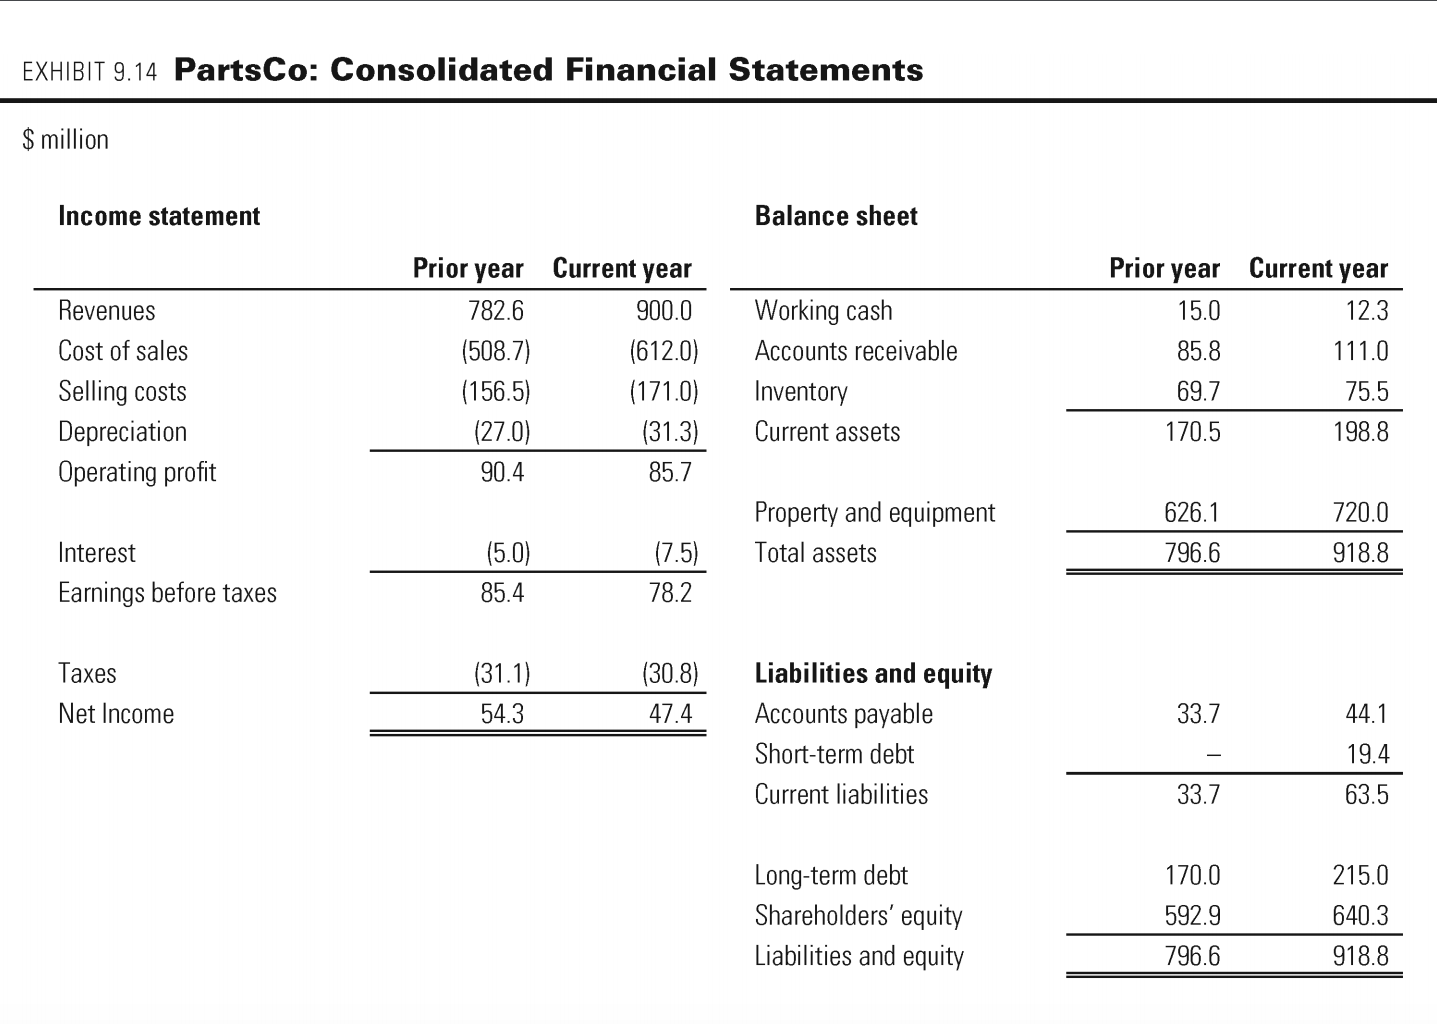 exhibit 914 partsco consolidated financial statements million income statement balance sheet current year 123